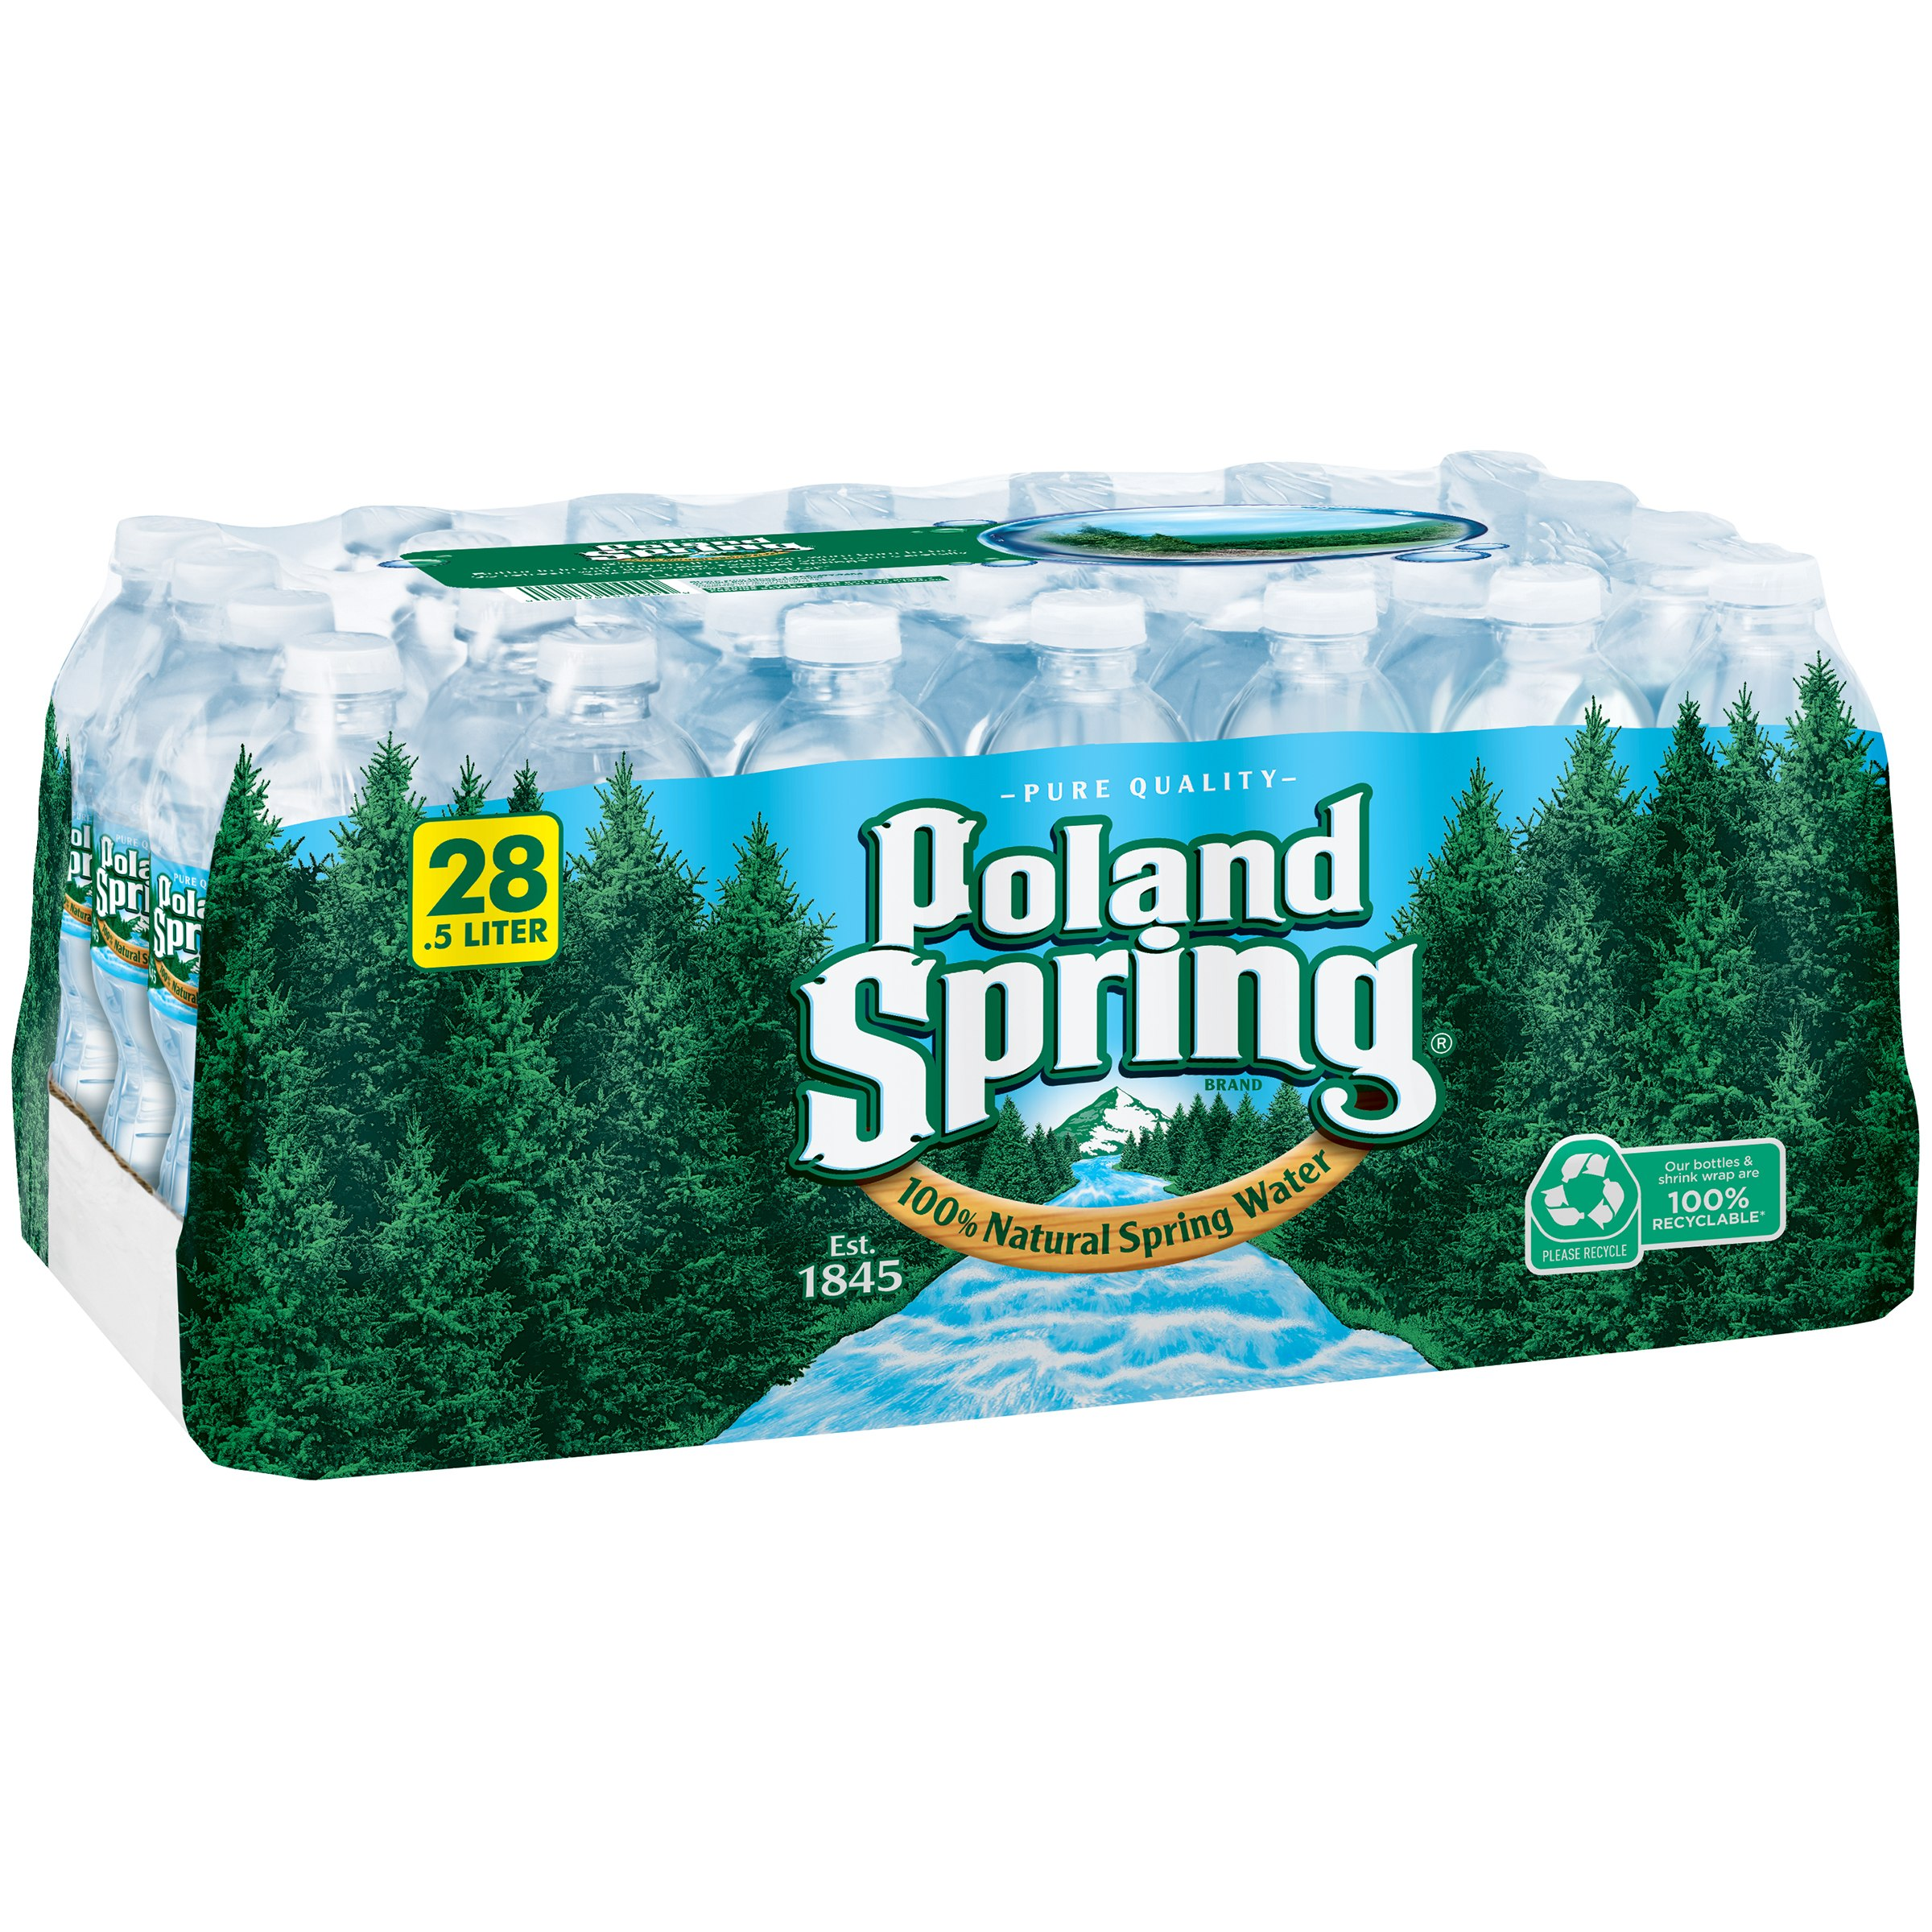 Poland Spring All Natural Spring Water, 16.9 Fl. Oz., 28 Count